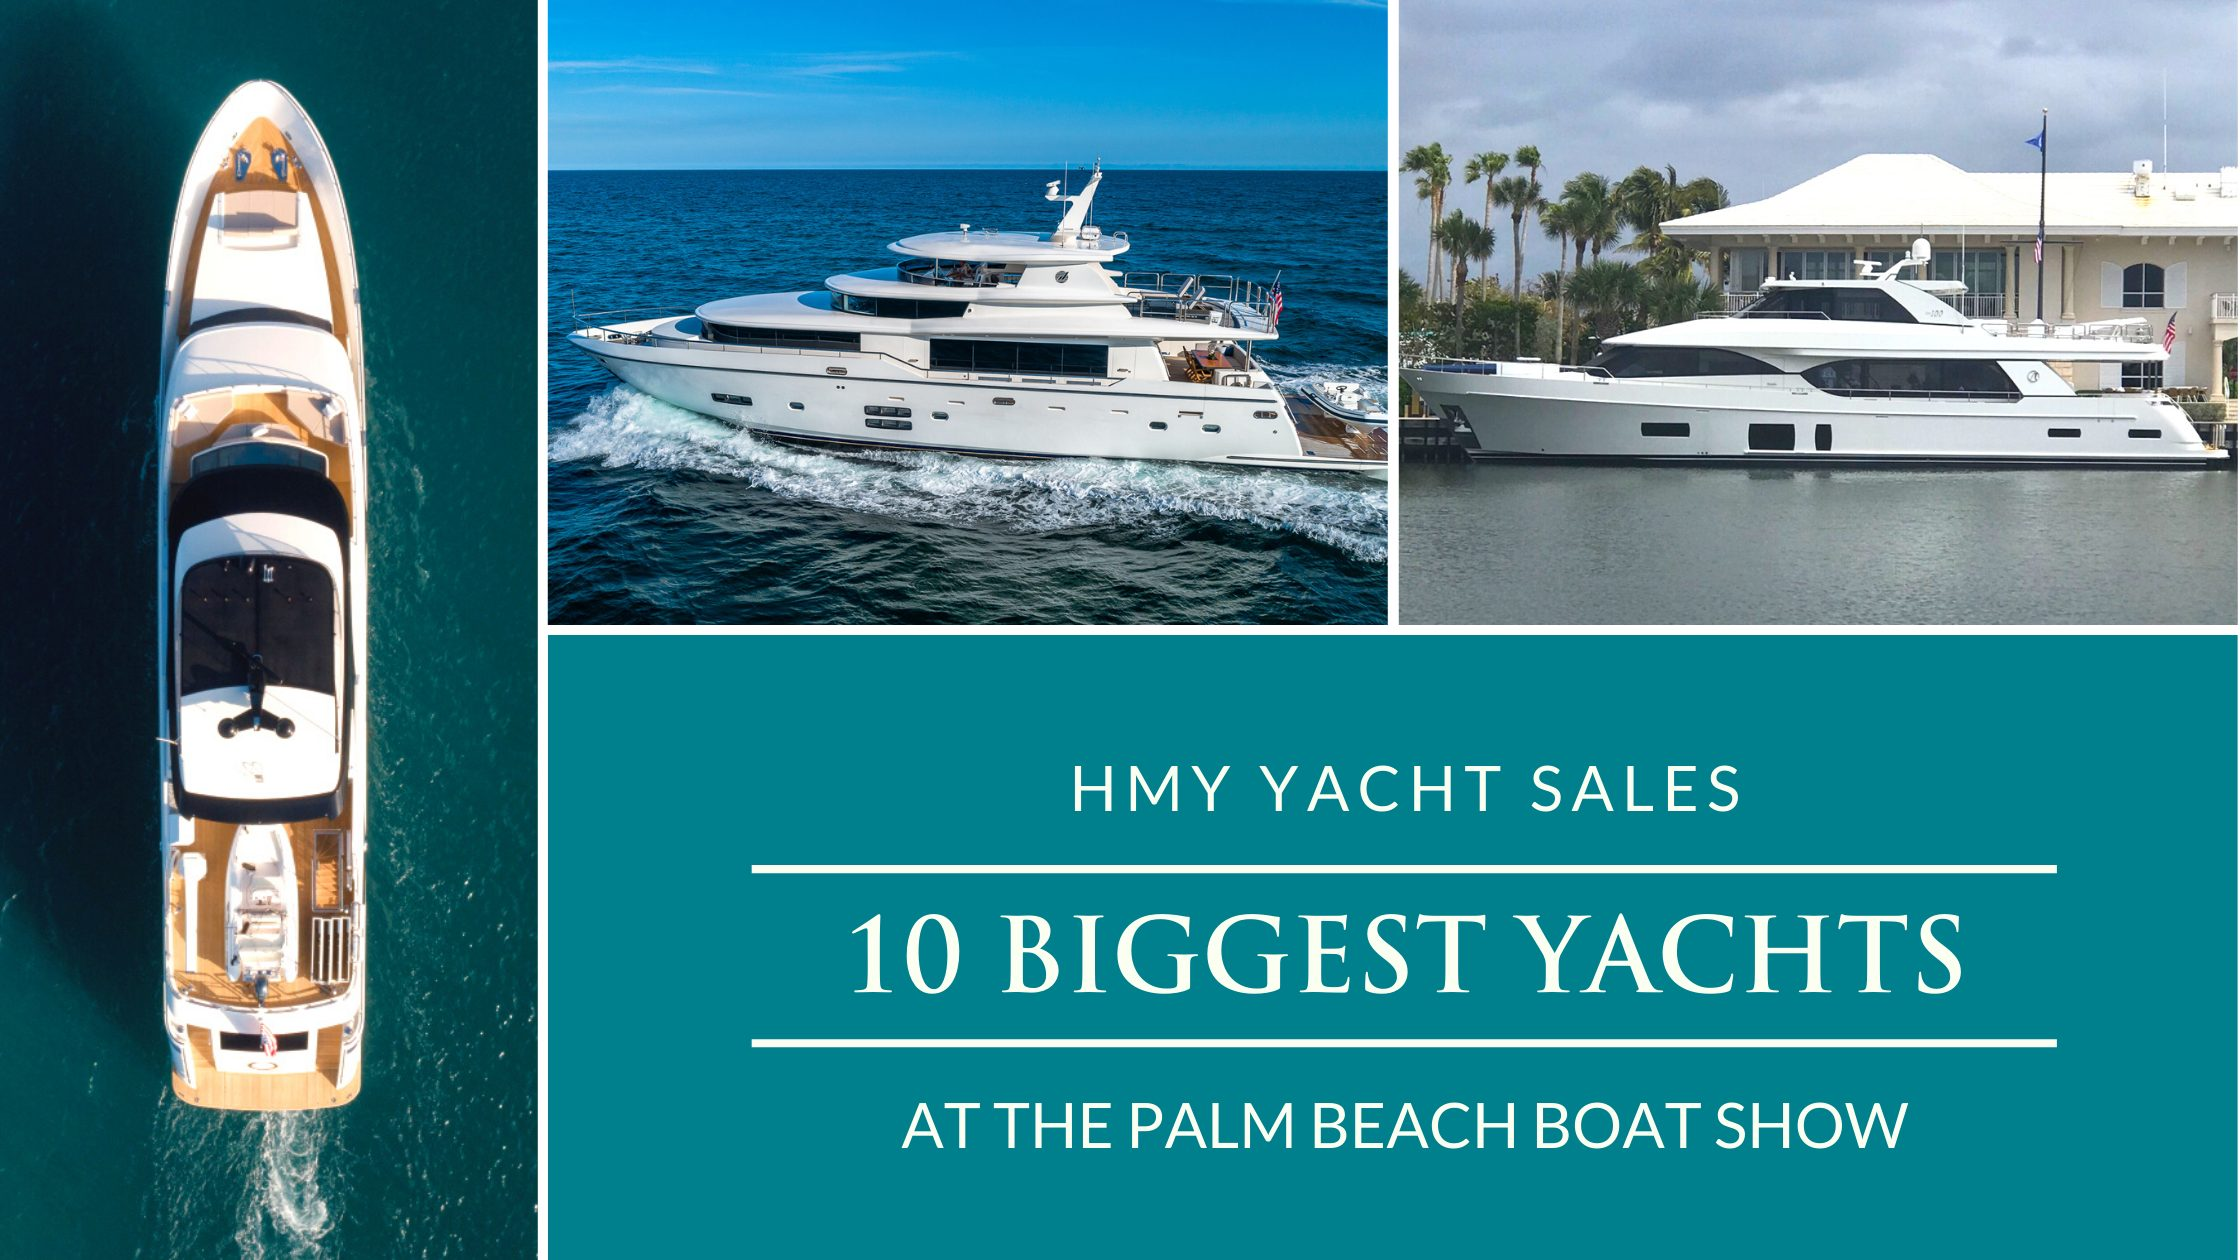 HMY's 10 Biggest Yachts At The Palm Beach Boat Show